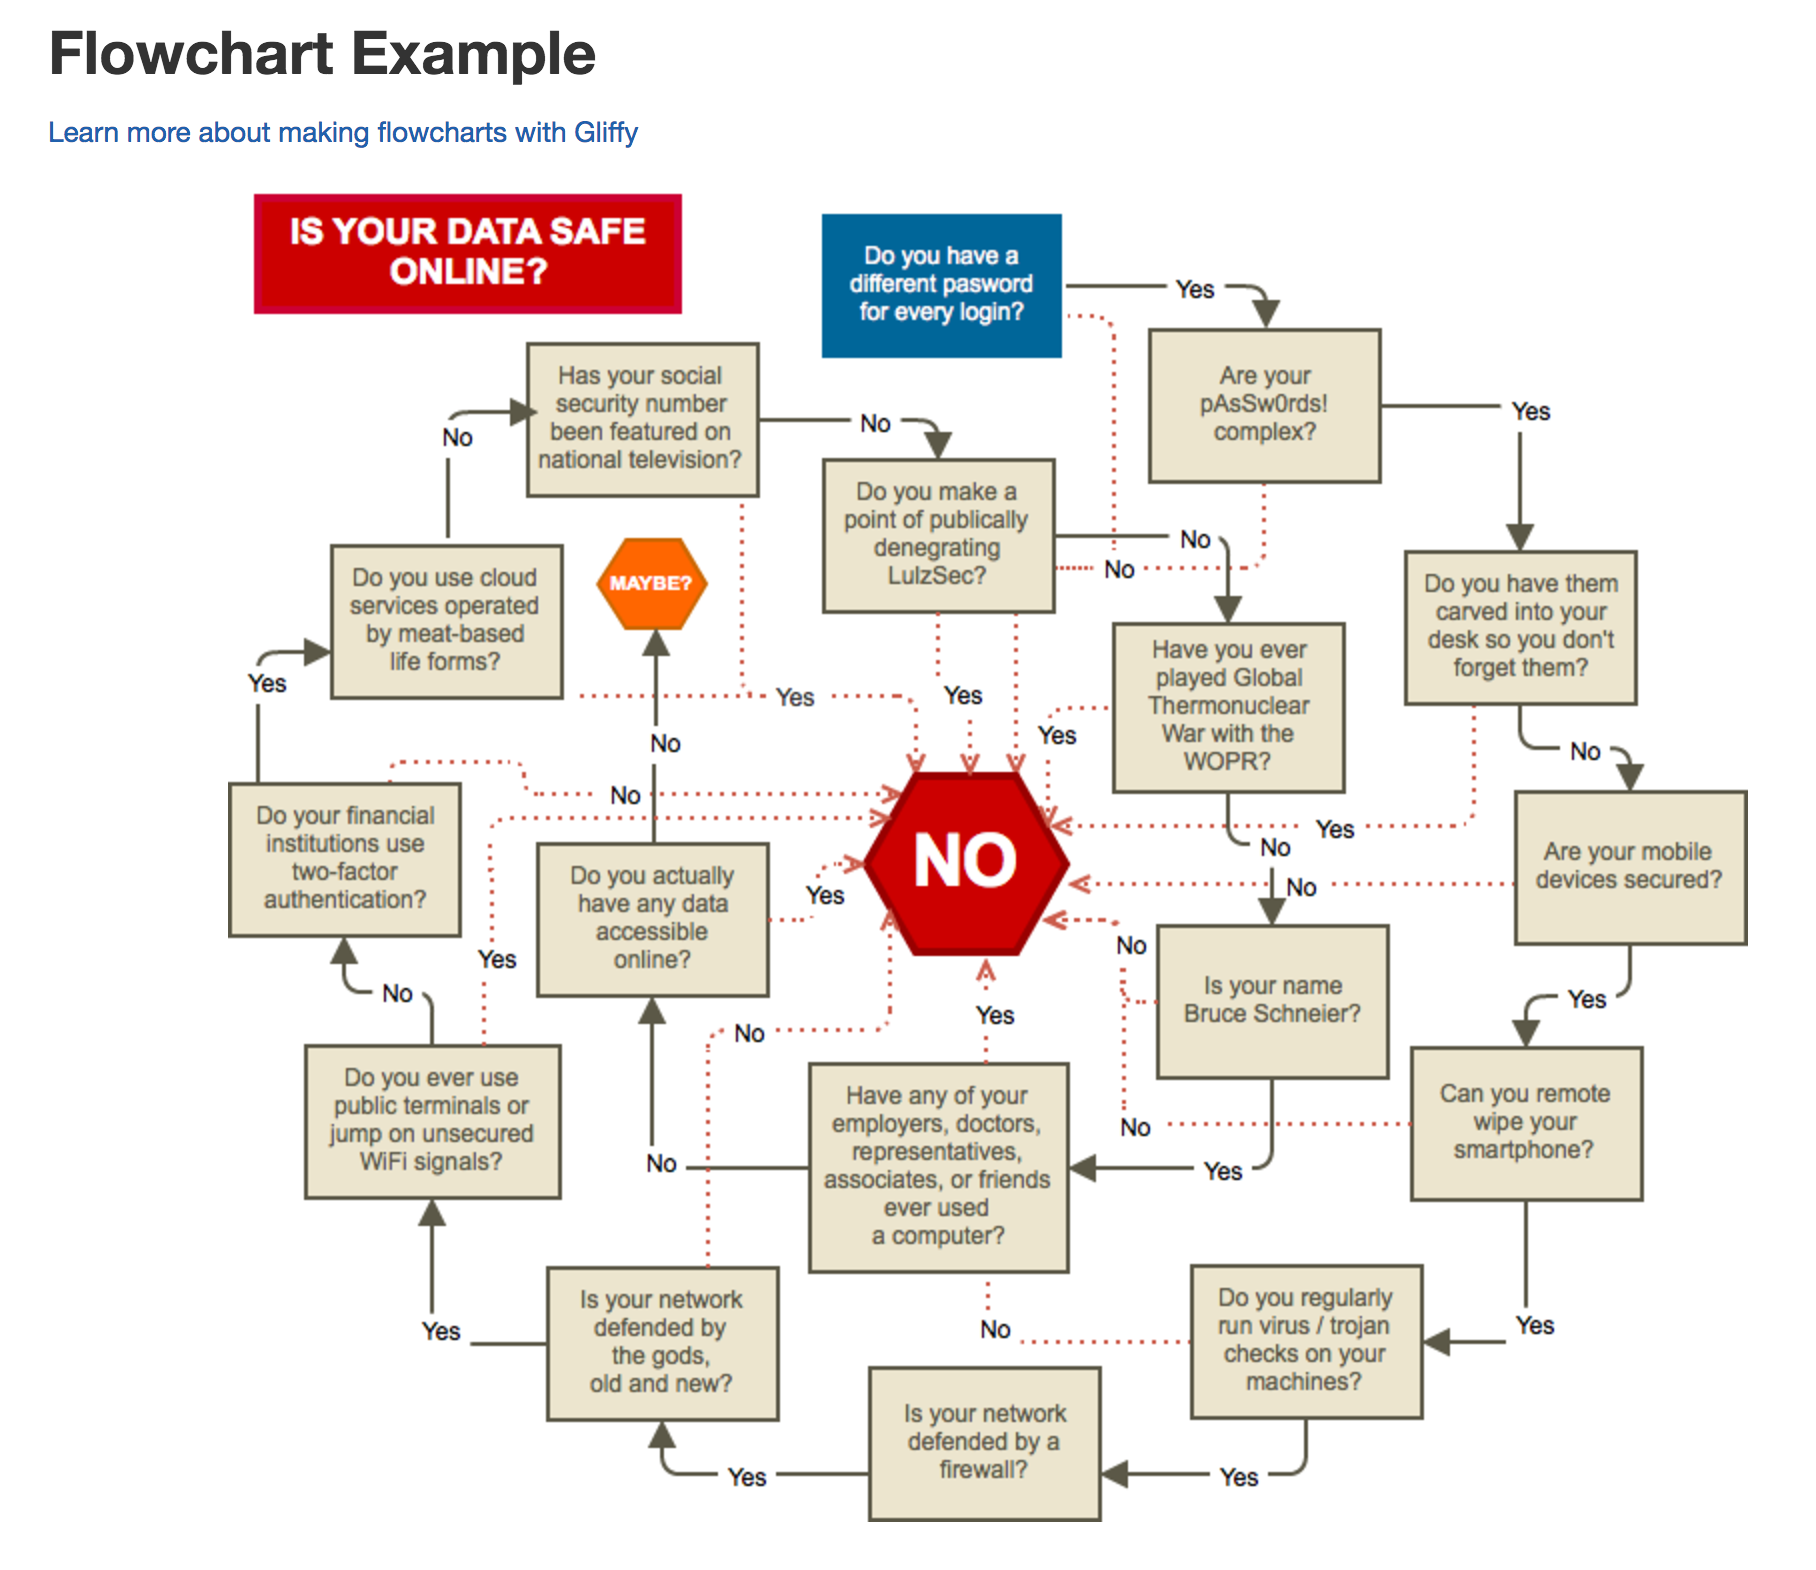 Gliffy flowchart example: is your data safe online